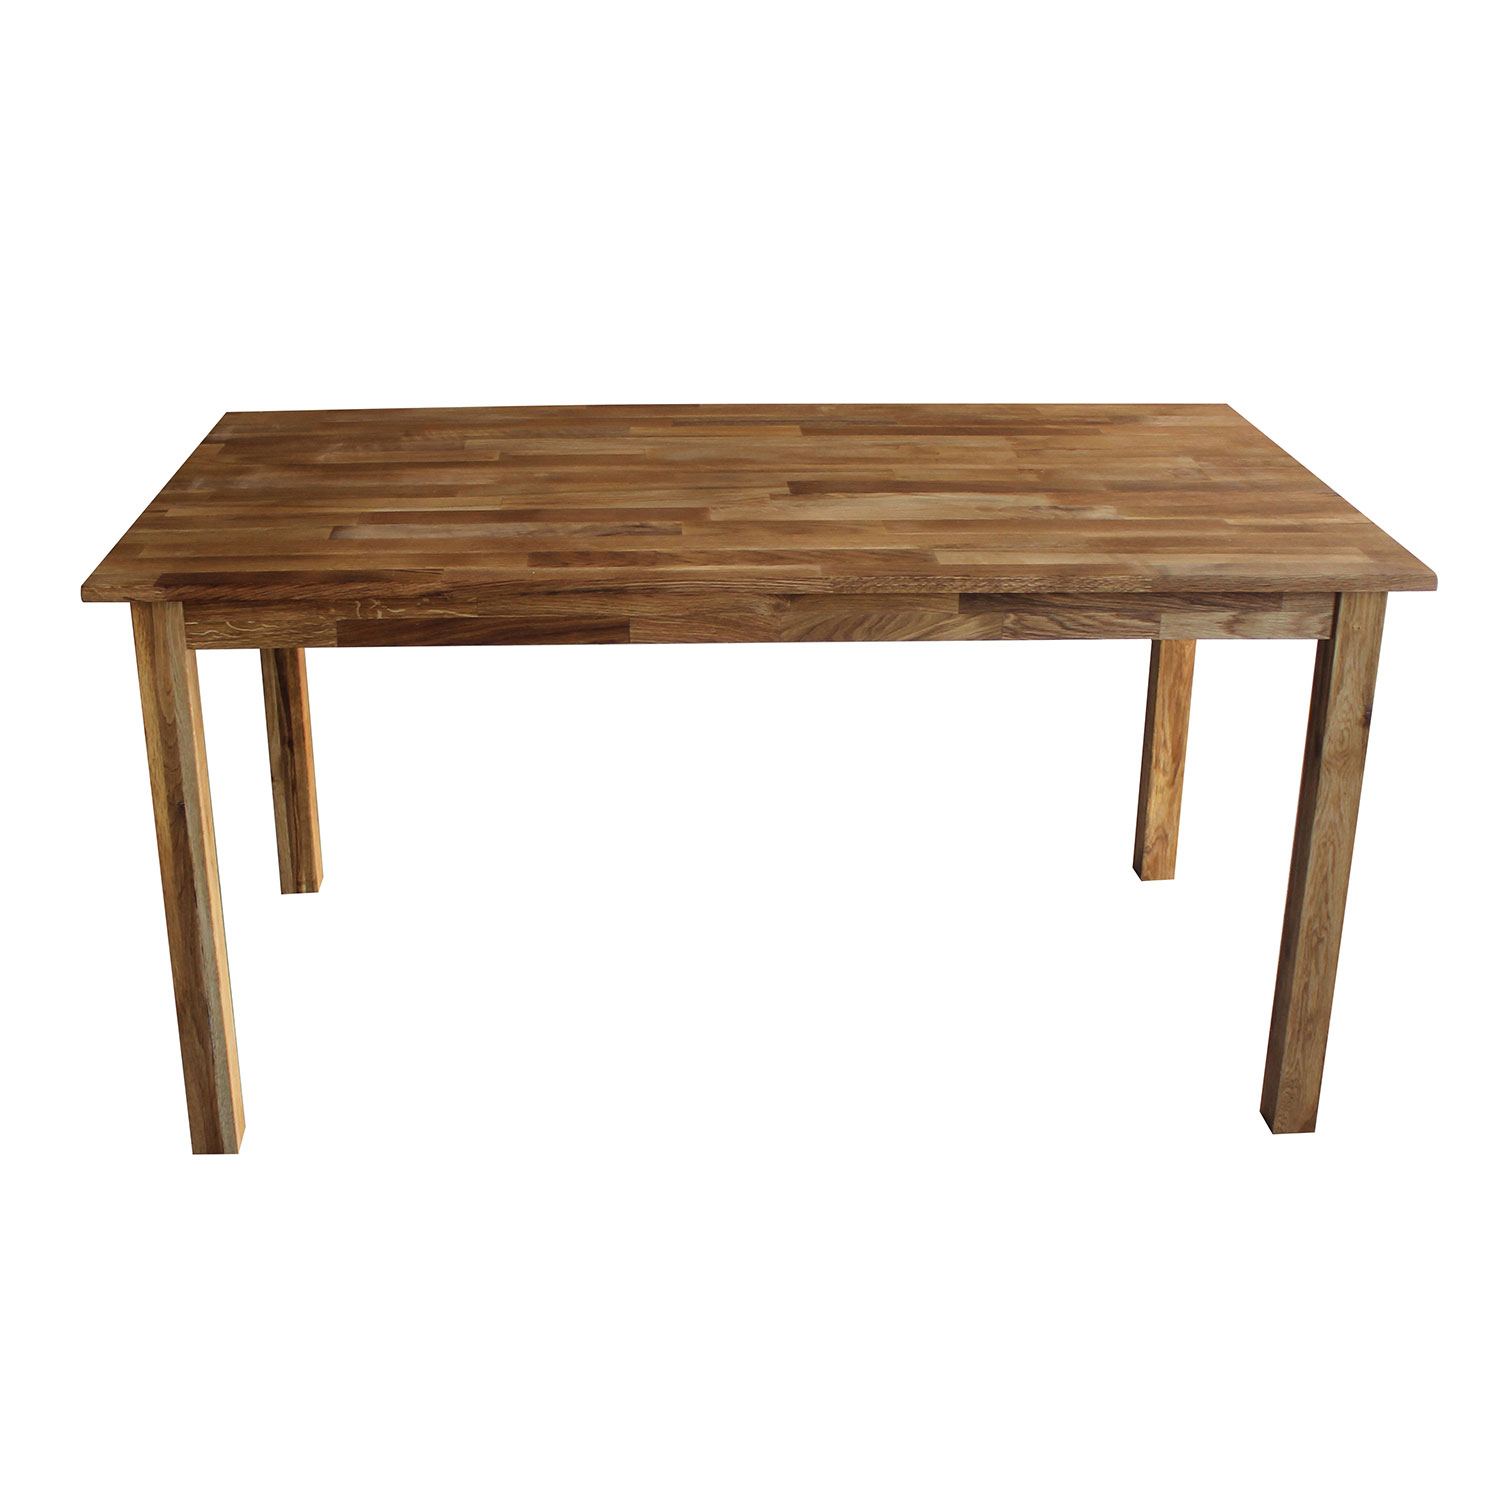 Charles bentley solid oak 6 8 seater wooden dining table for 6 seater dining table